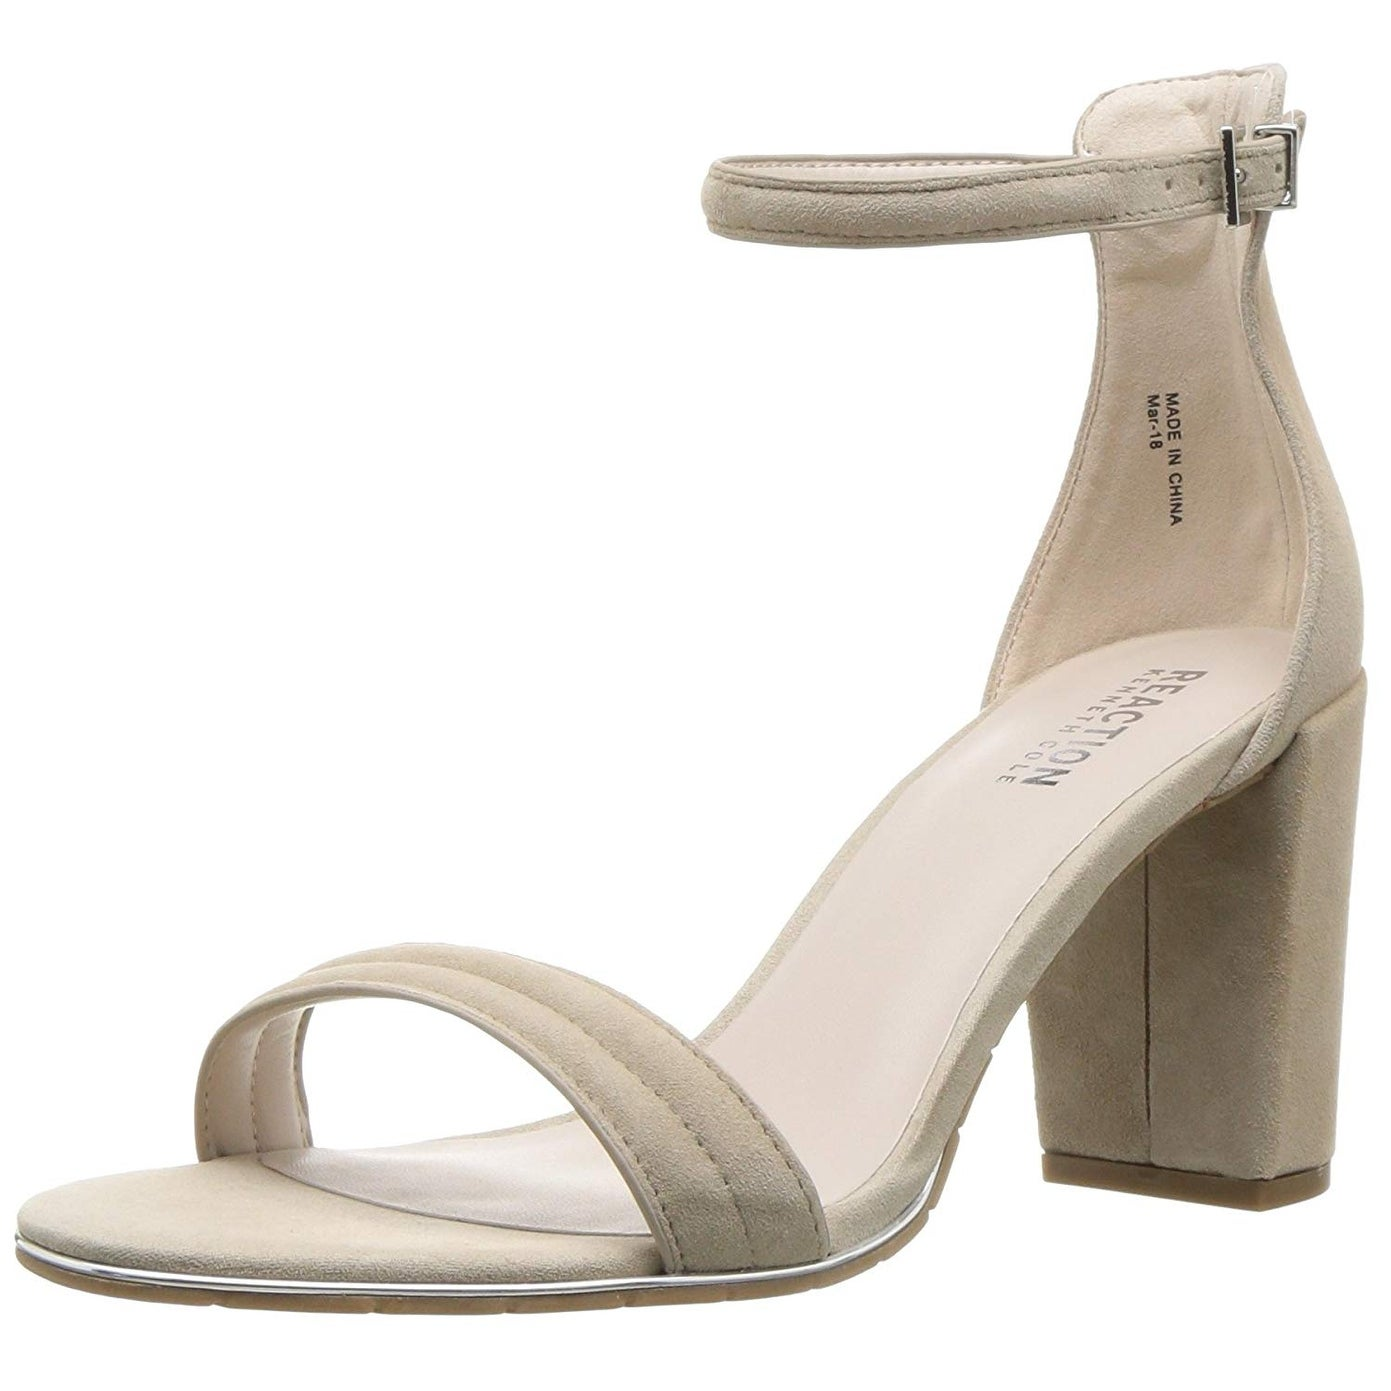 f76e481f1b8 Shop Kenneth Cole Reaction Womens Lolita Leather Open Toe Casual Ankle  Strap Sandals - Free Shipping On Orders Over  45 - Overstock - 25364435